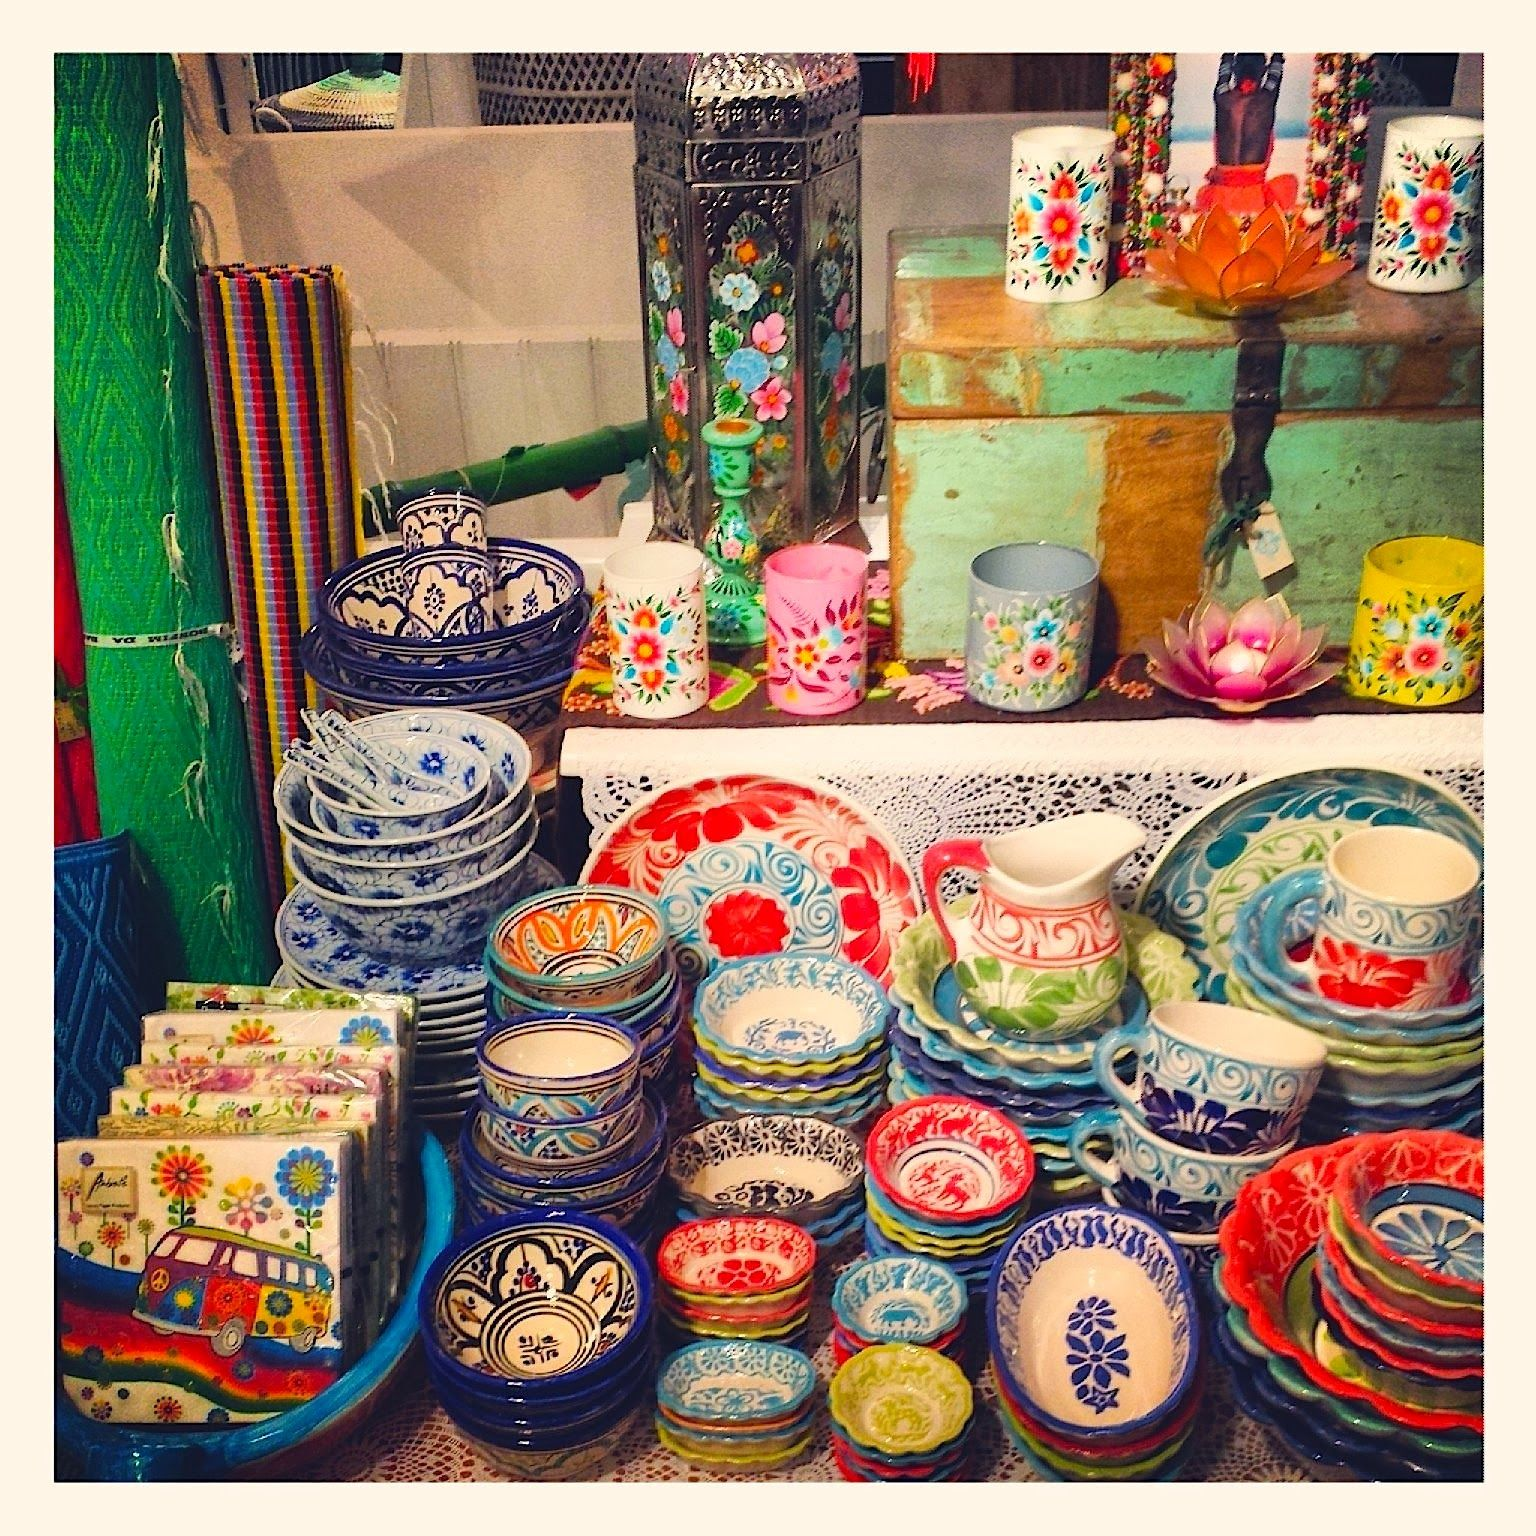 Colorful Funky & #fair Ceramic For The Urban #hippy With A